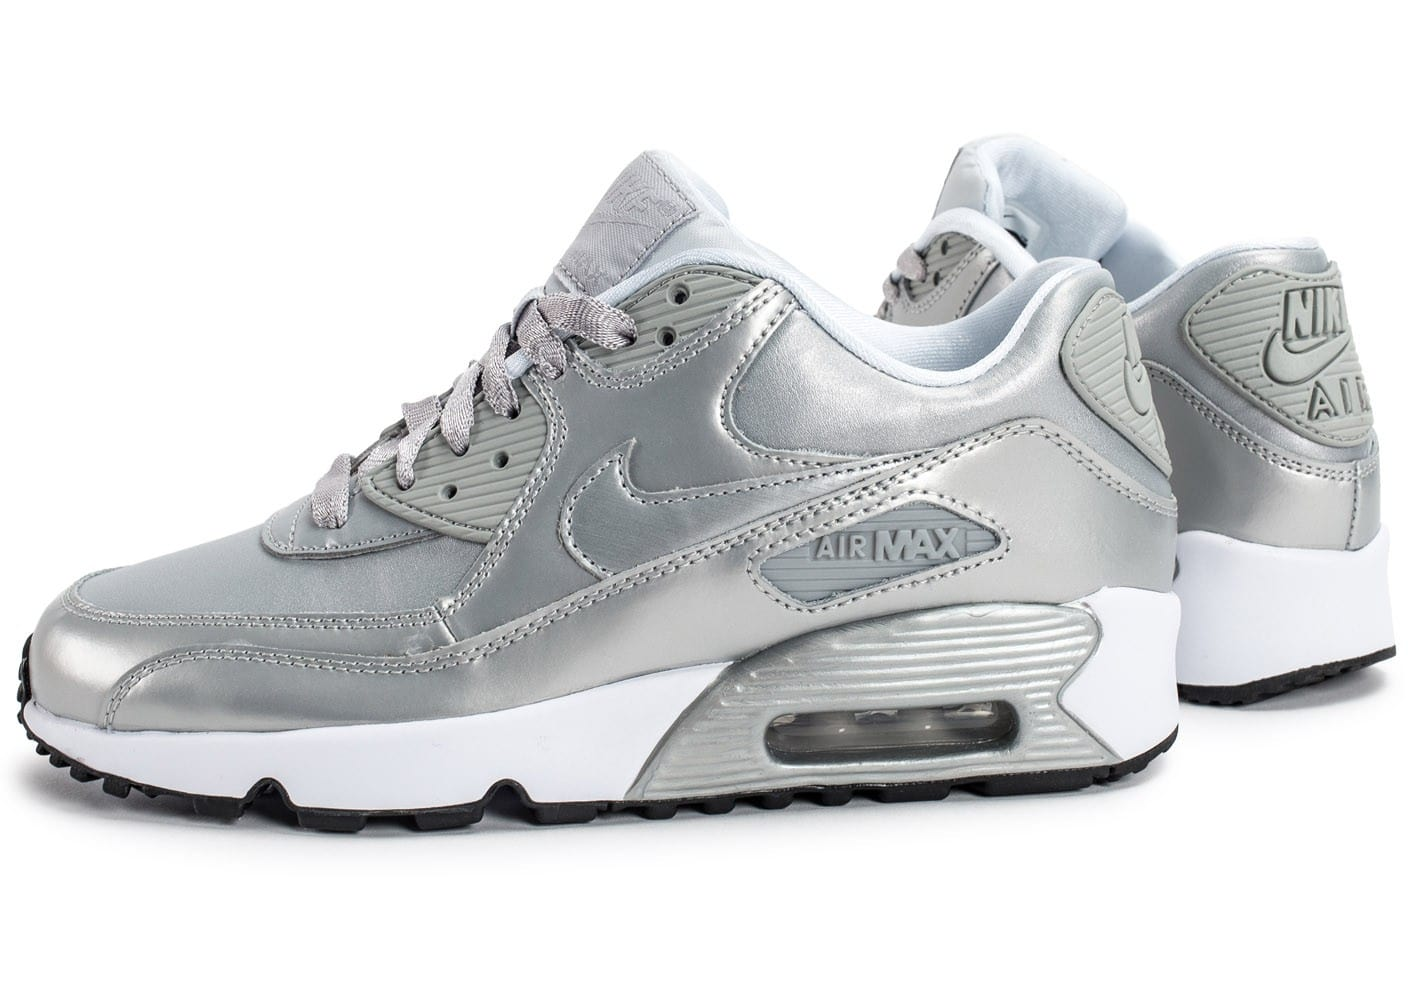 huge selection of f6889 cd9db Cliquez pour zoomer Chaussures Nike Air Max 90 SE Leather silver pack vue  extérieure ...